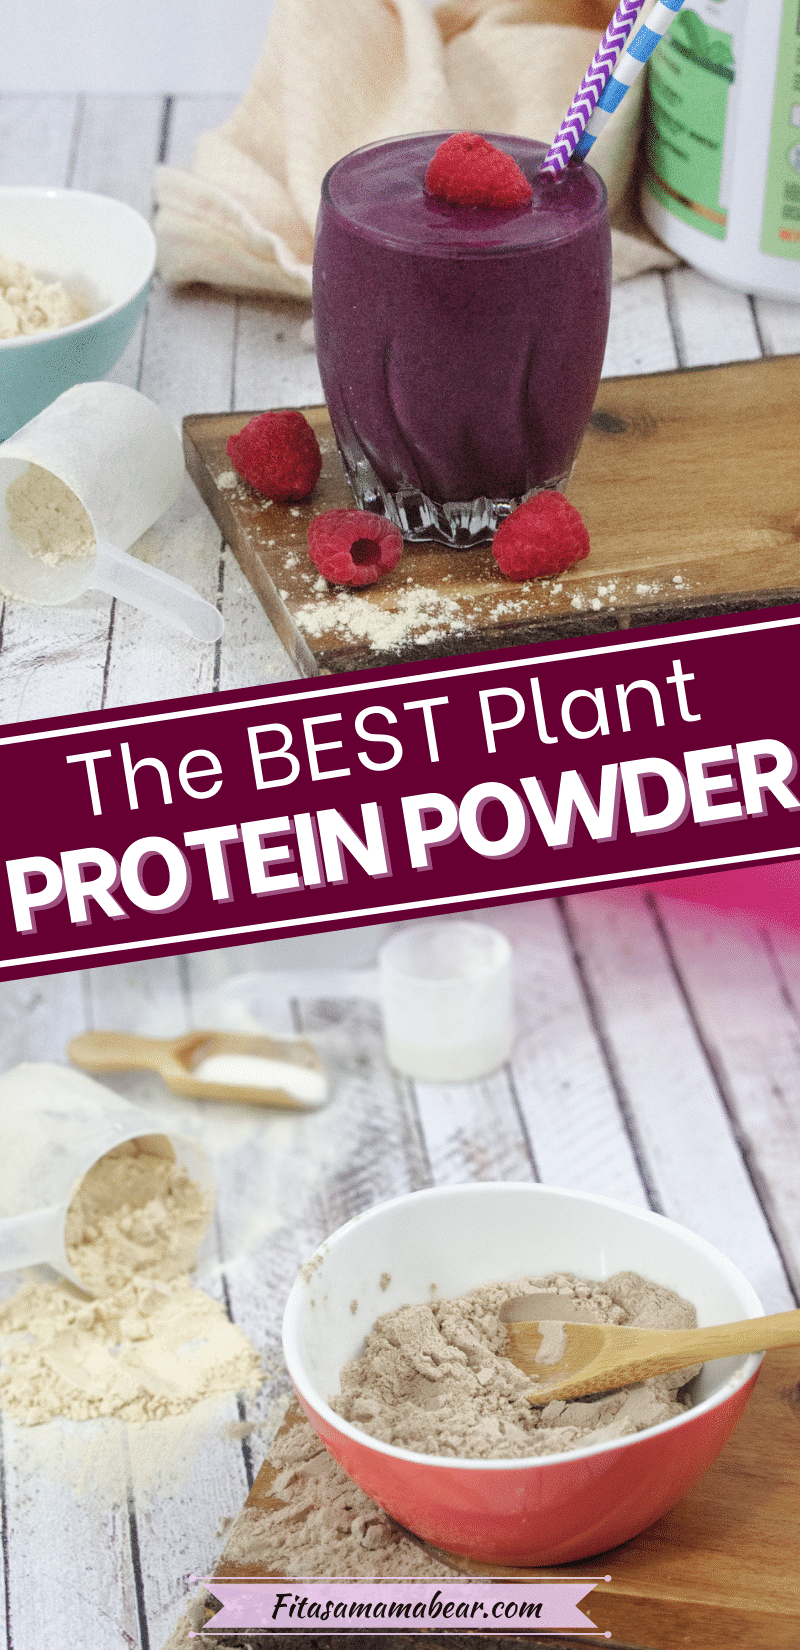 Pin image with text: two images, the bottom of multiple protein powders in bowls and spoons and the top of a purple protein shake with protein powder around it